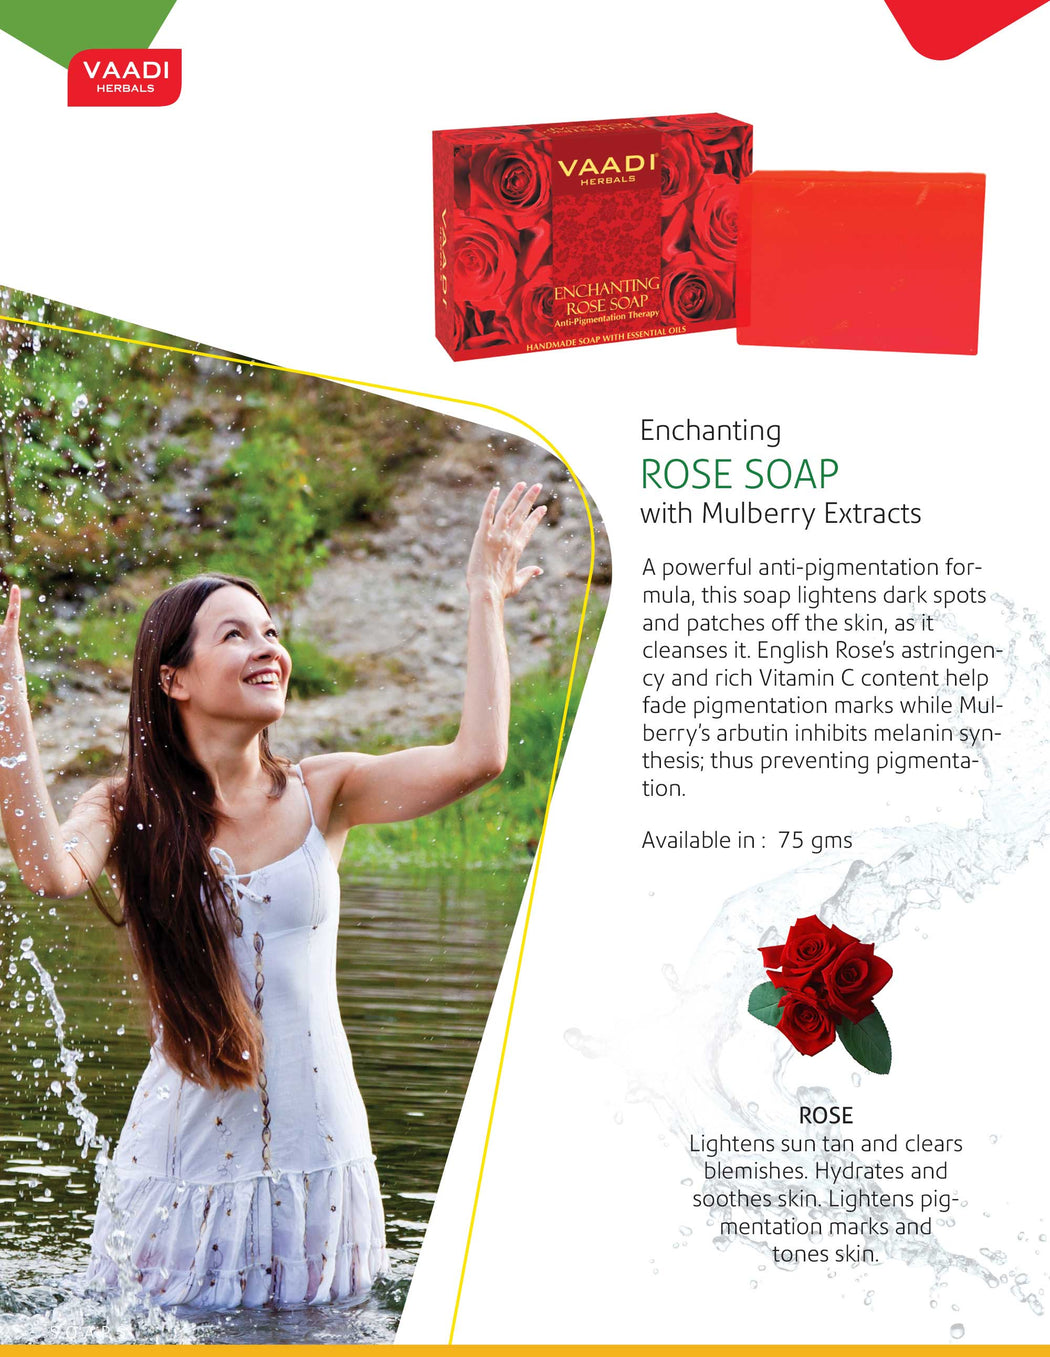 Enchanting Rose Soap with Mulberry Extract (75 gms)